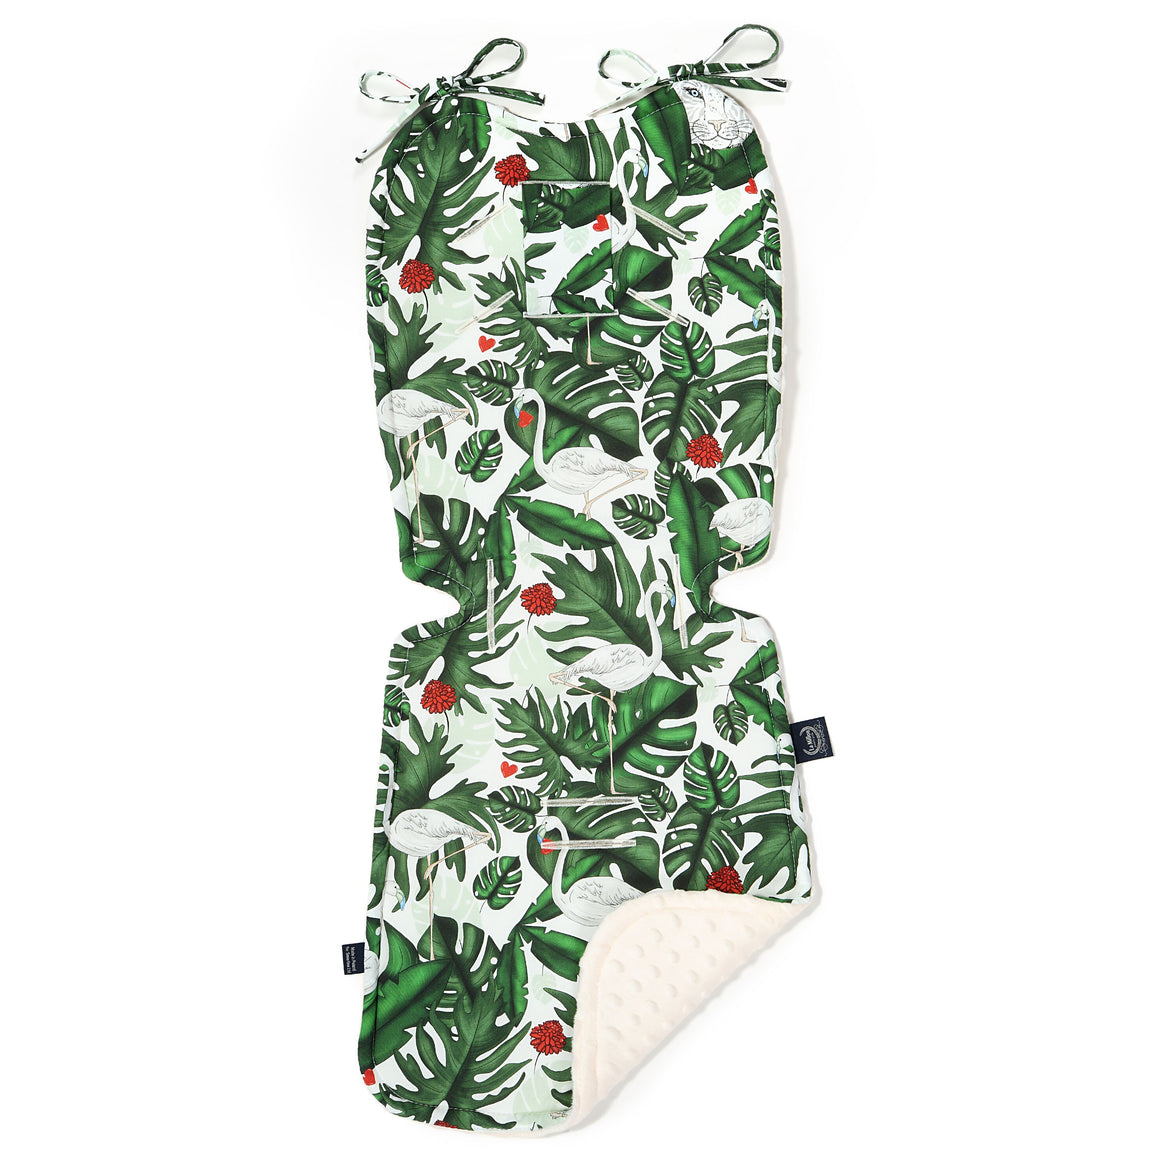 THICK STROLLER PAD - Evergreen Tiger | Ecru